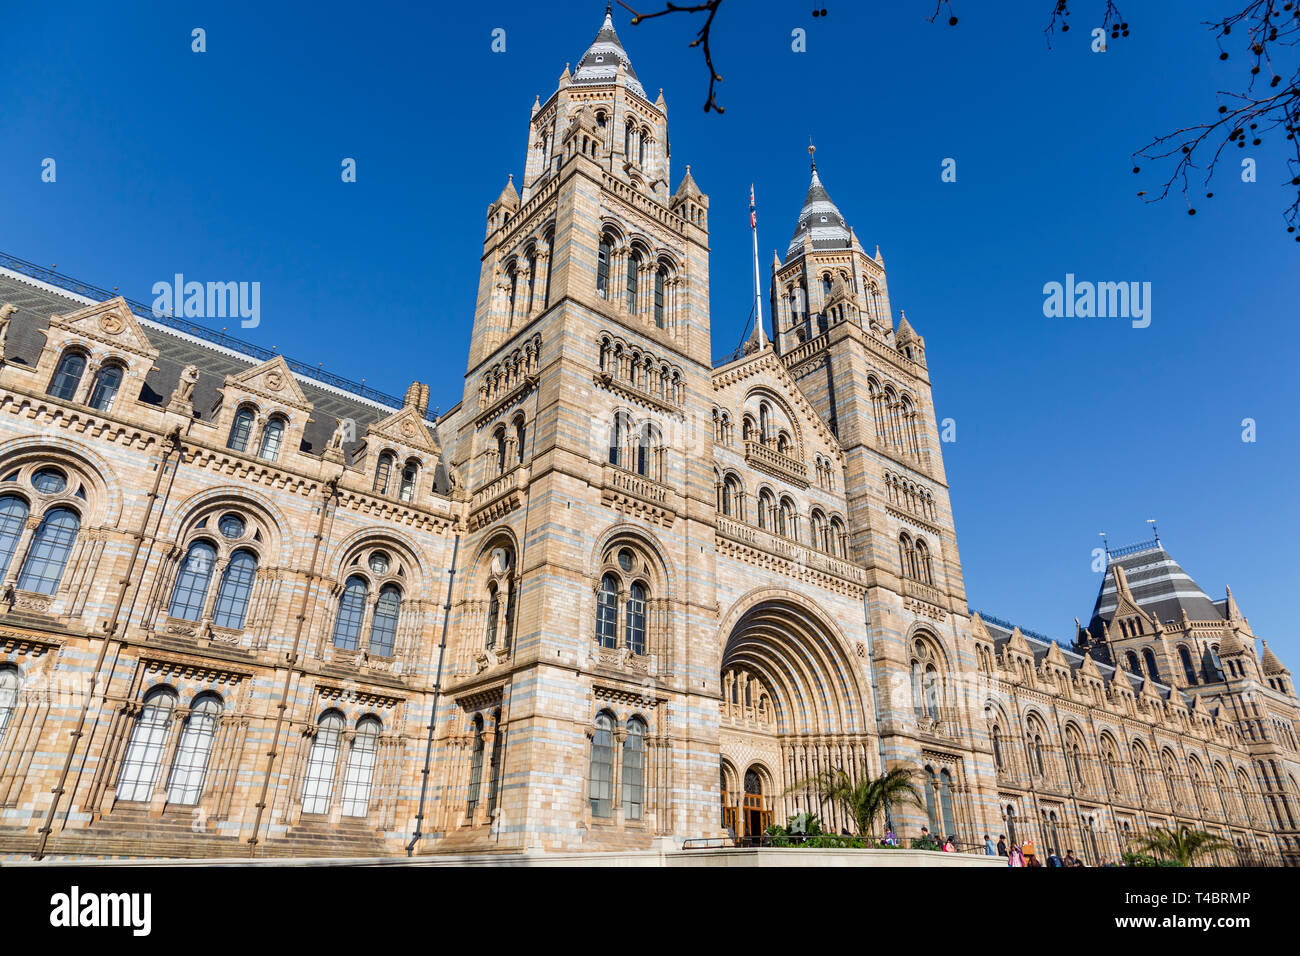 London Natural History Museum, England, UK - Stock Image